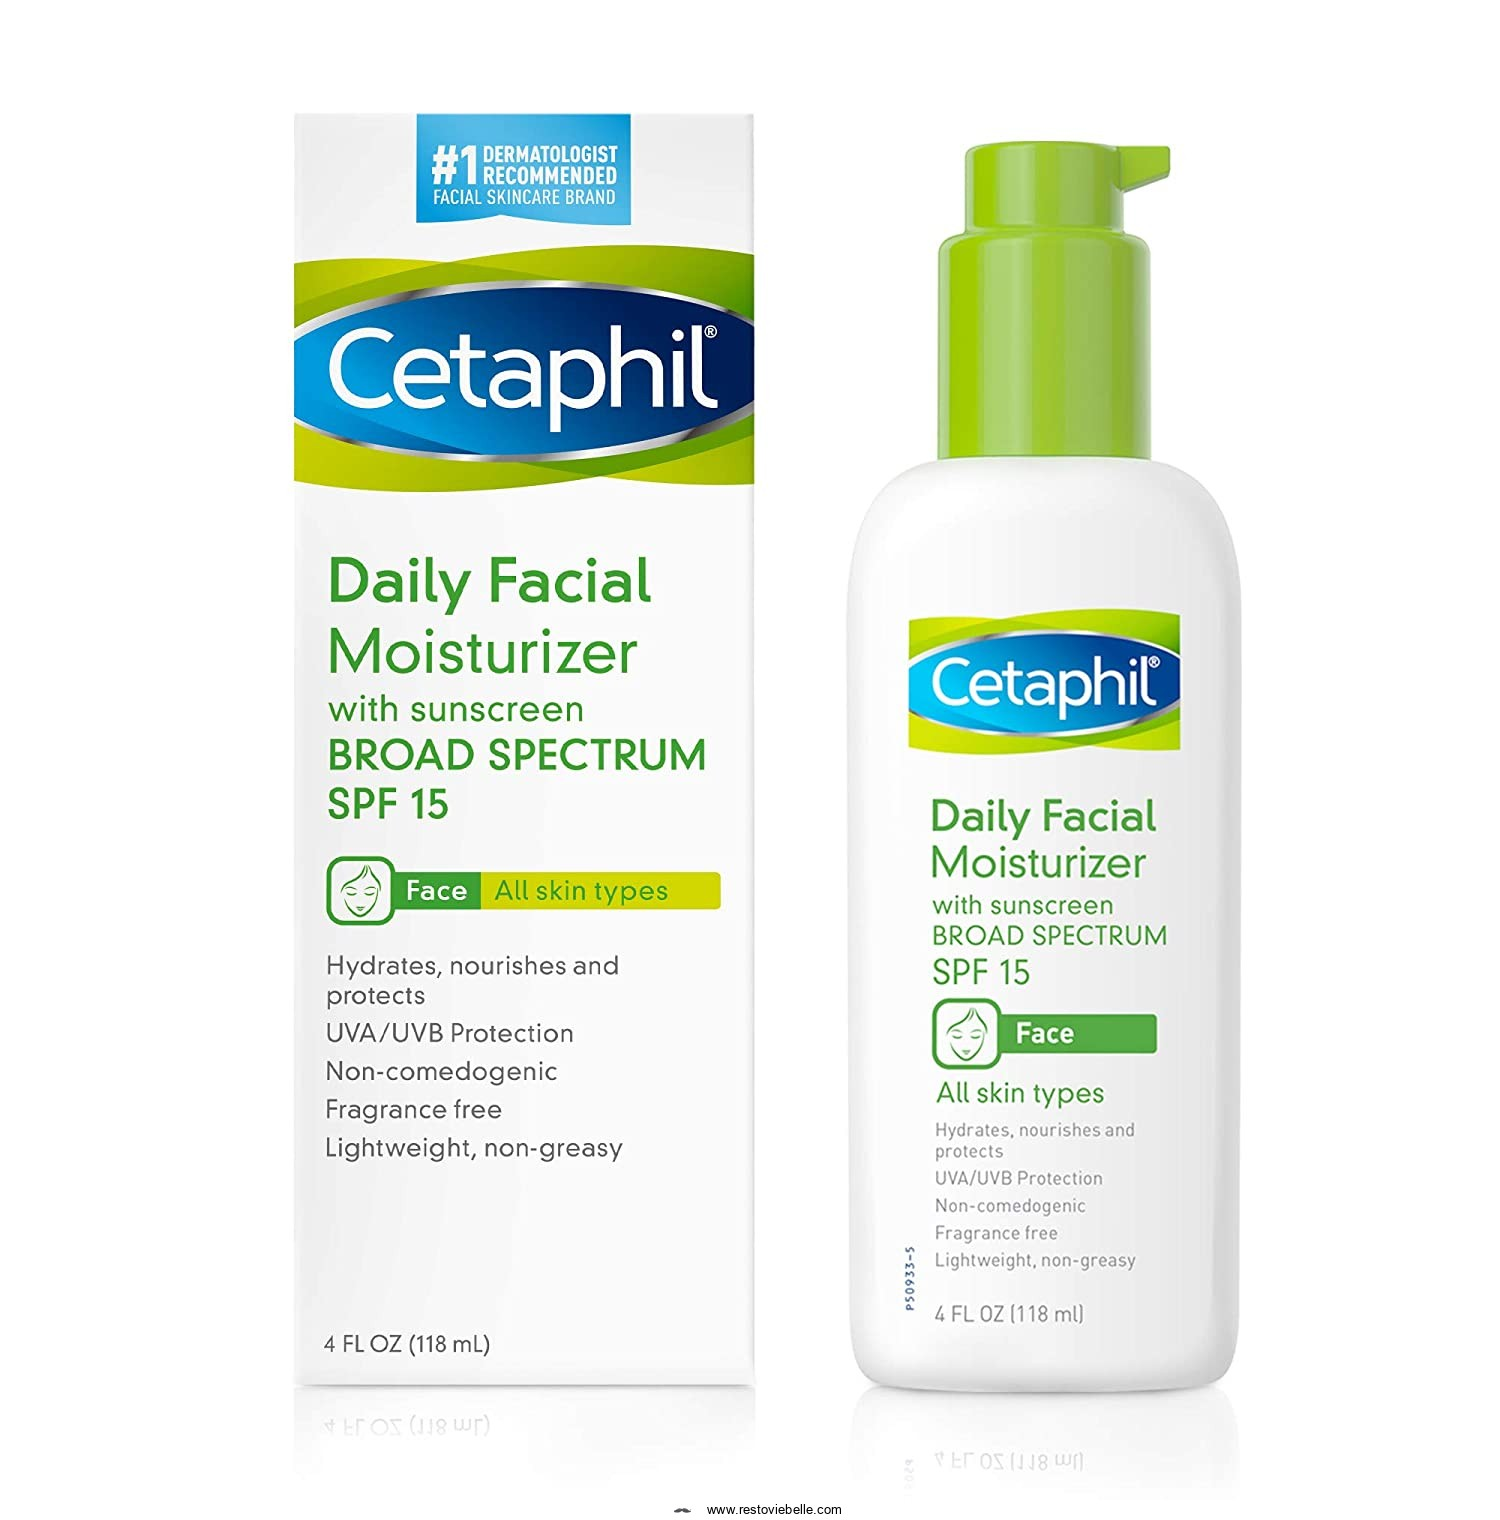 Cetaphil Daily Facial Moisturizer with